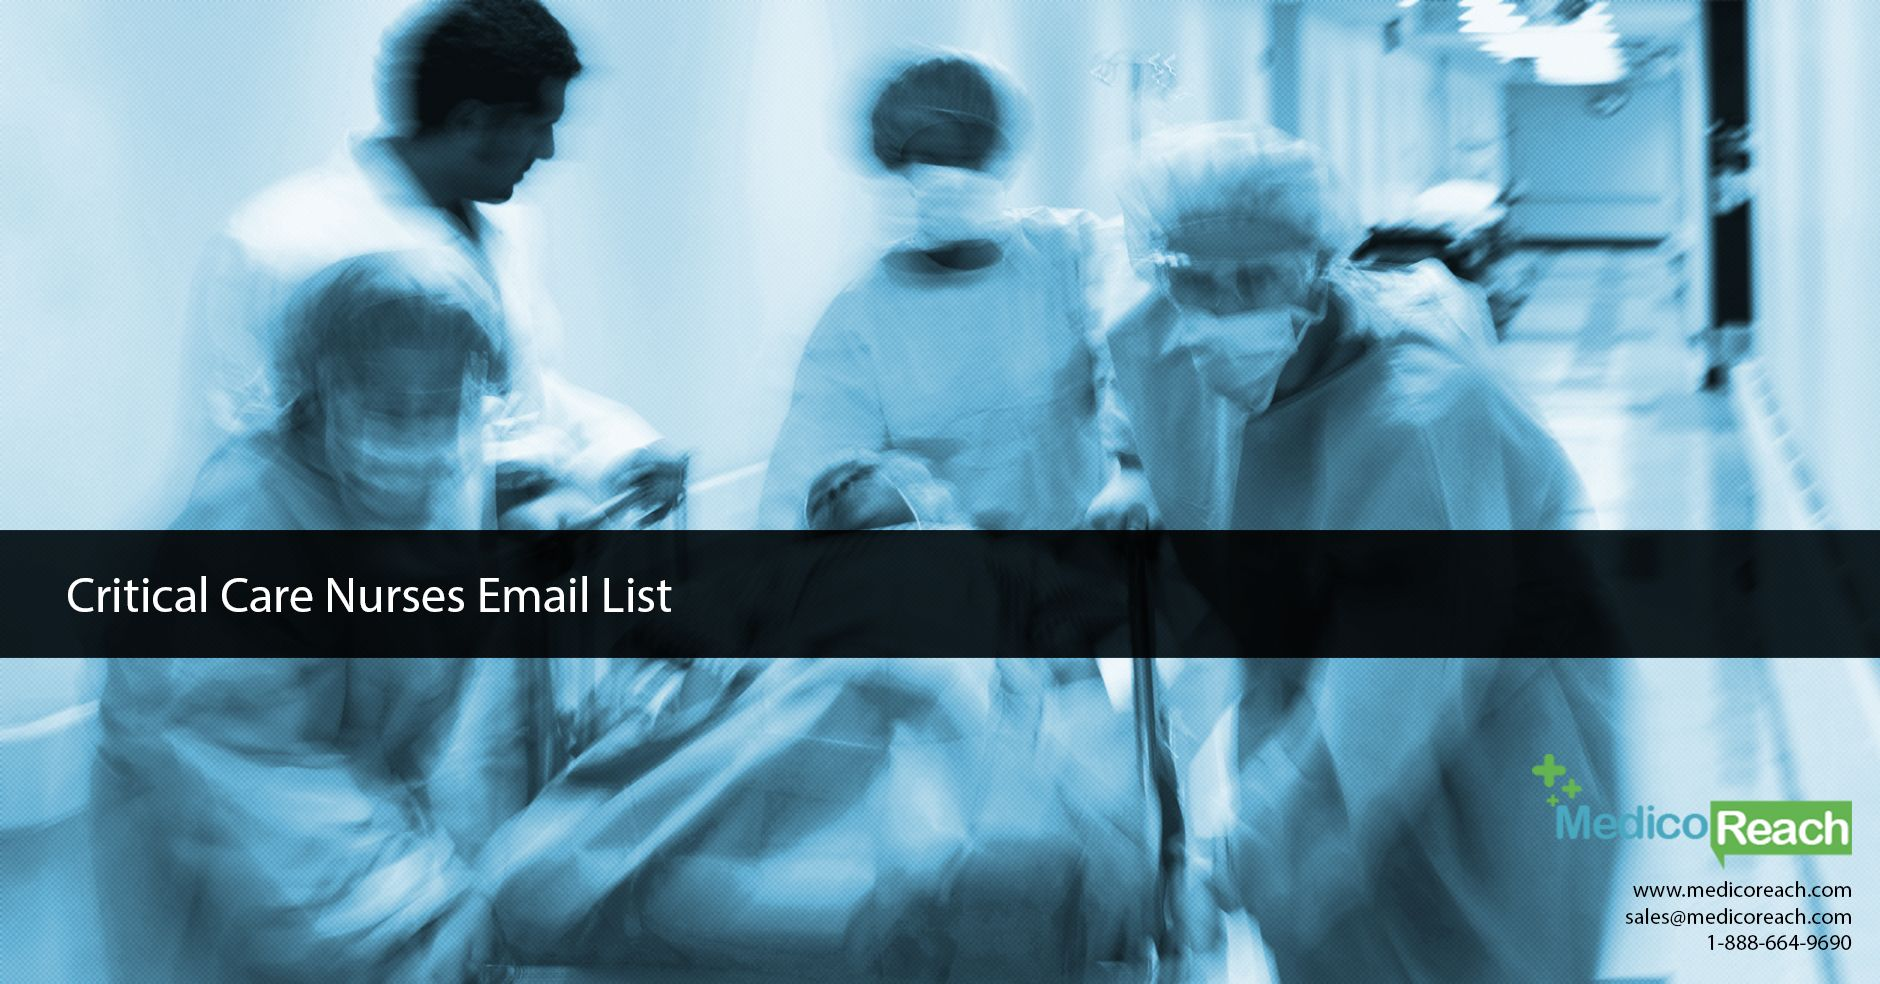 If you are looking to buy critical care nurses email